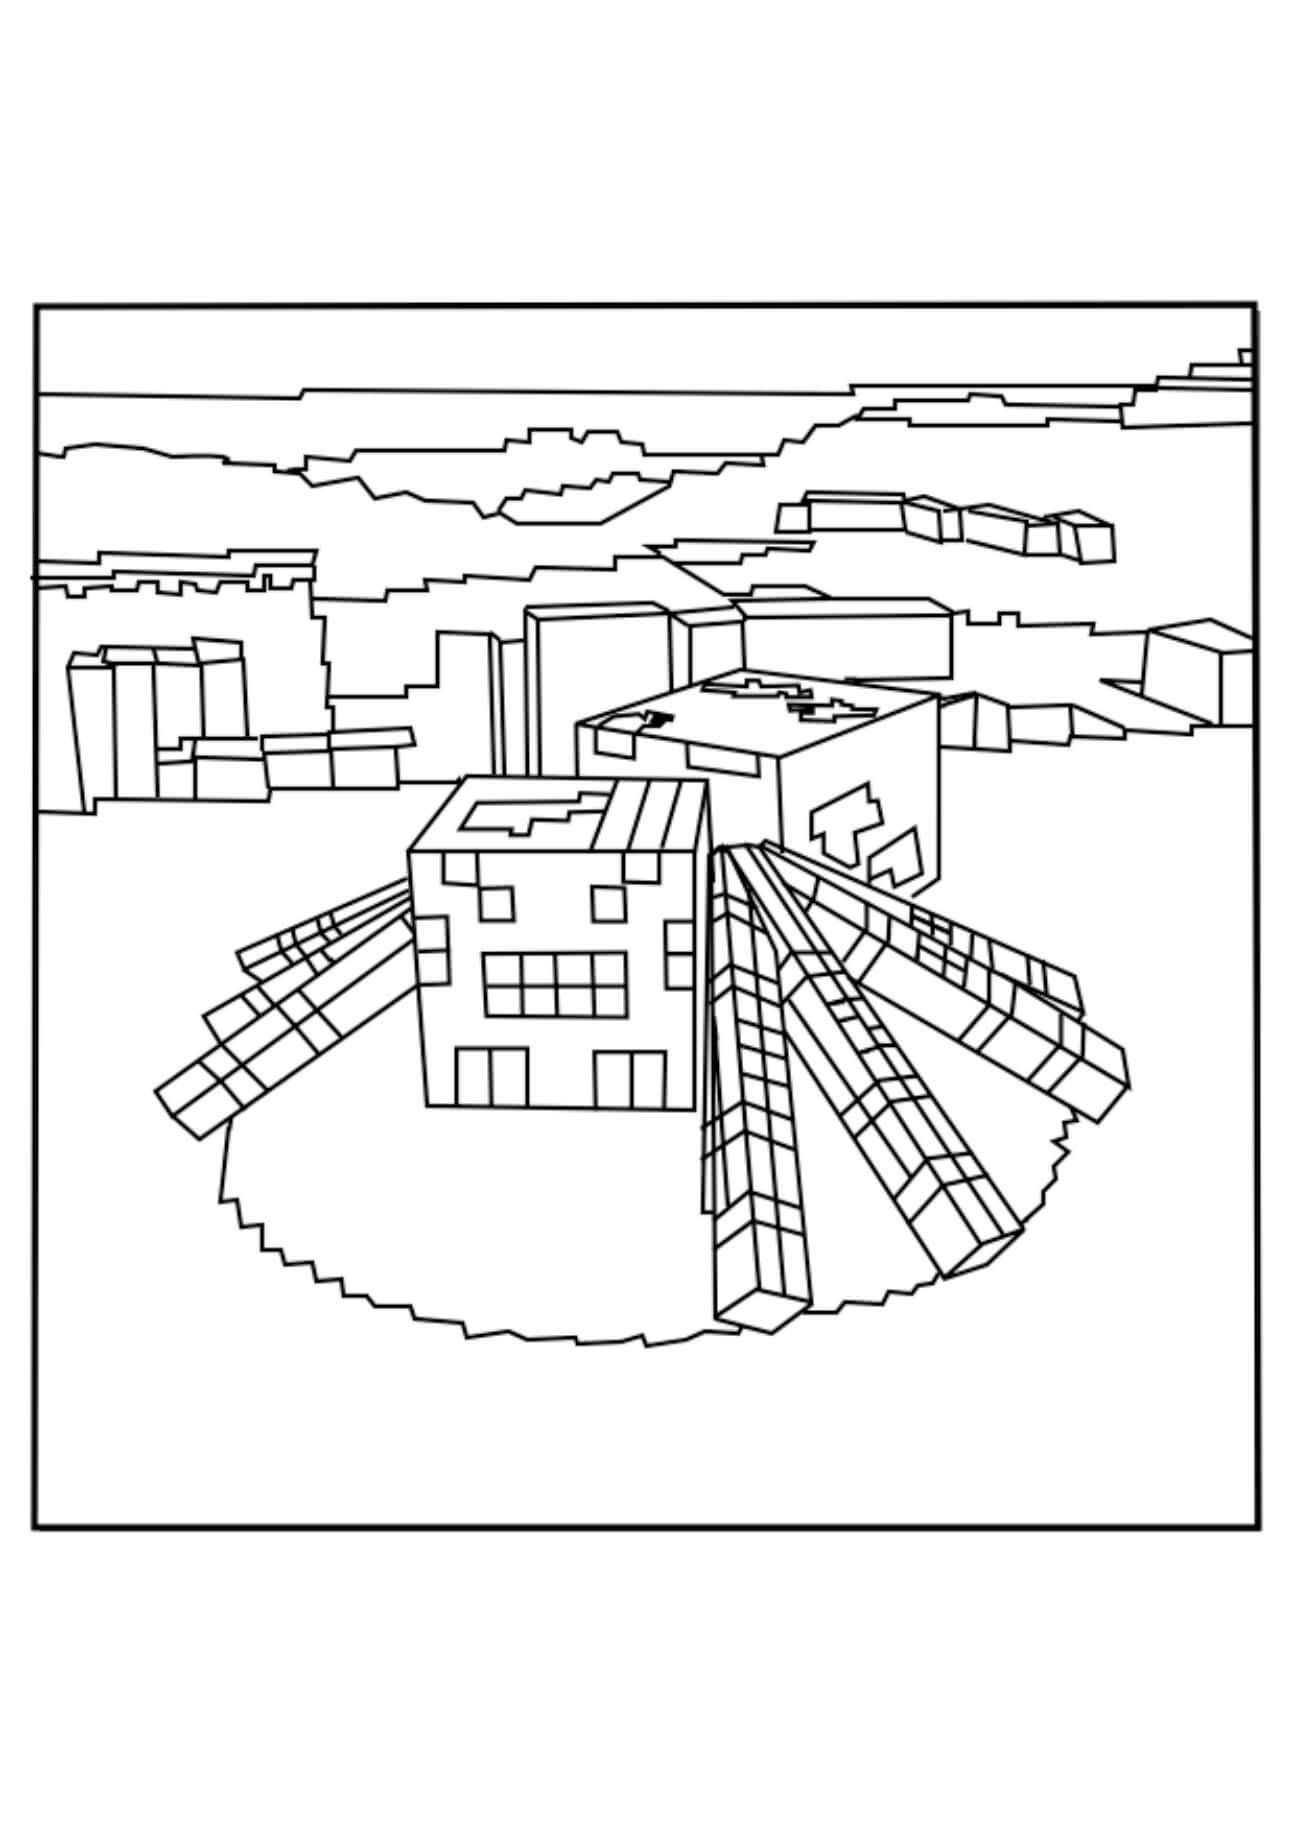 Minecraft Spider Coloring Page Youngandtae Com In 2020 Spider Coloring Page Coloring Pages Minecraft Coloring Pages